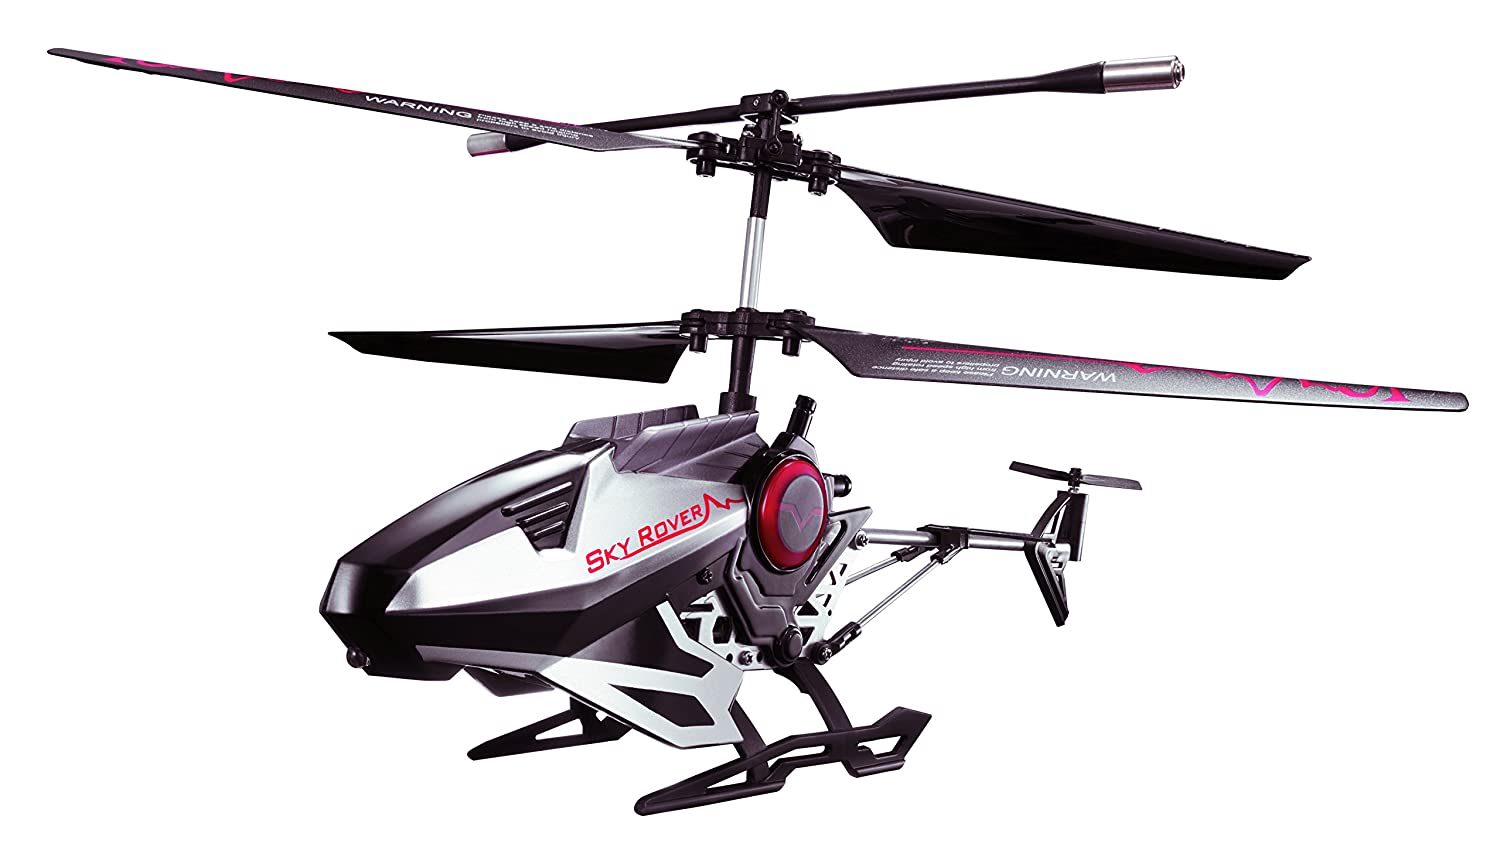 Sky Rover Voice Command Heli Vehicle Review